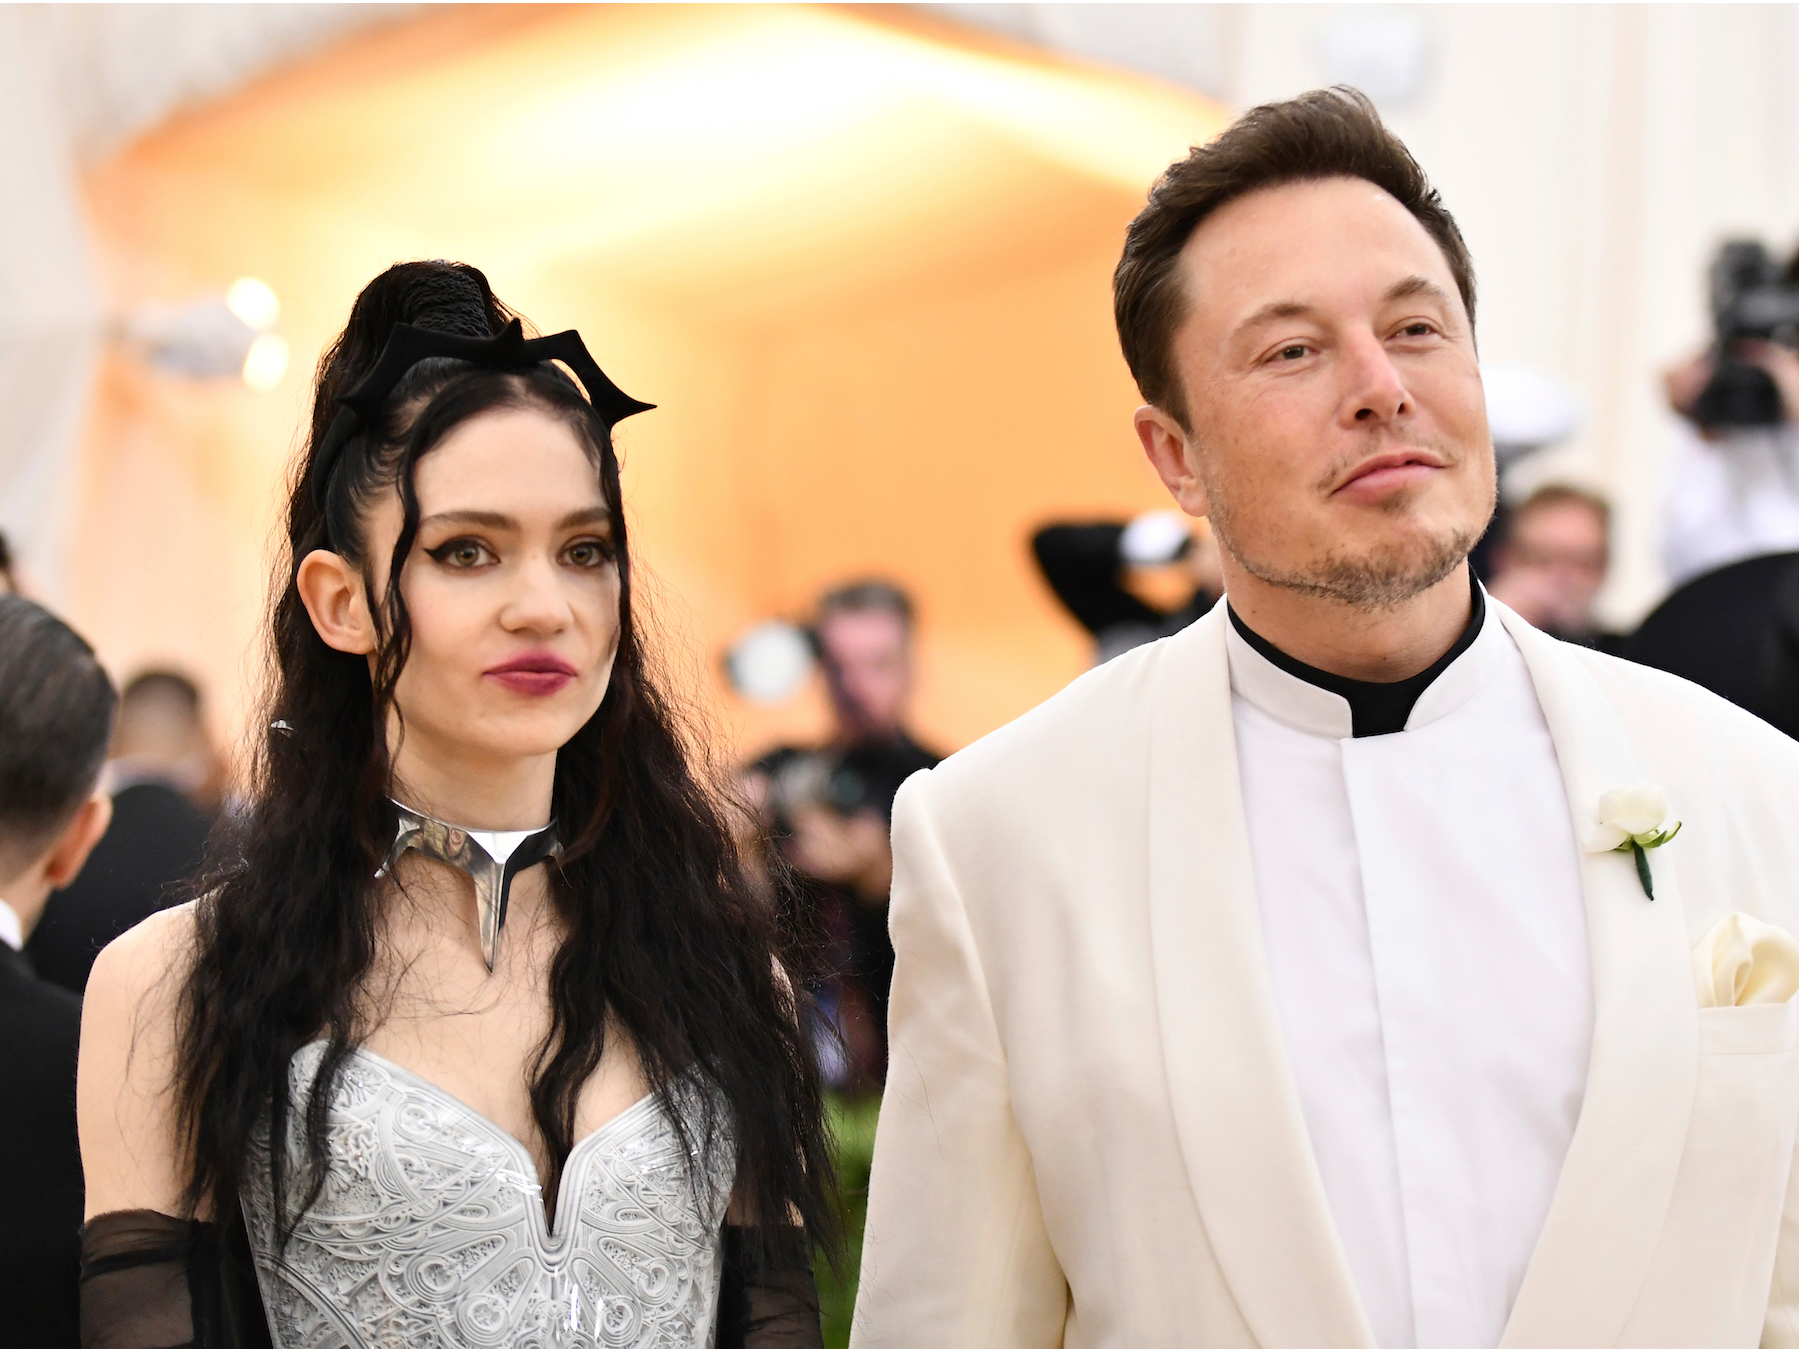 Meet Grimes the Canadian pop star who streams video games and is dating  Elon Musk (